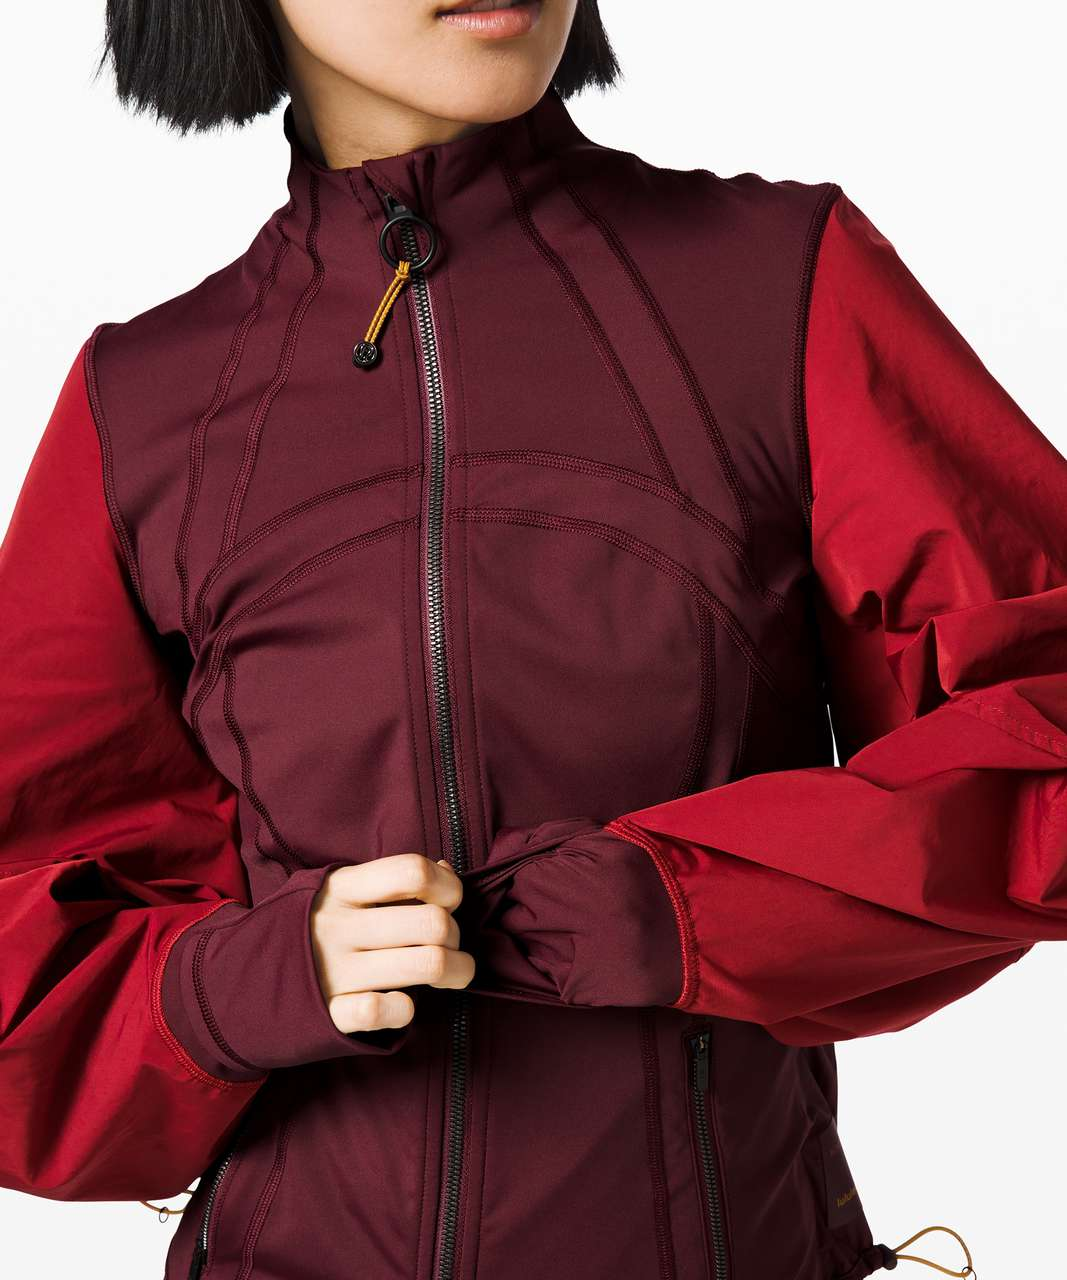 Lululemon Face Forward Define Jacket *lululemon x Roksanda - Garnet / Caliente